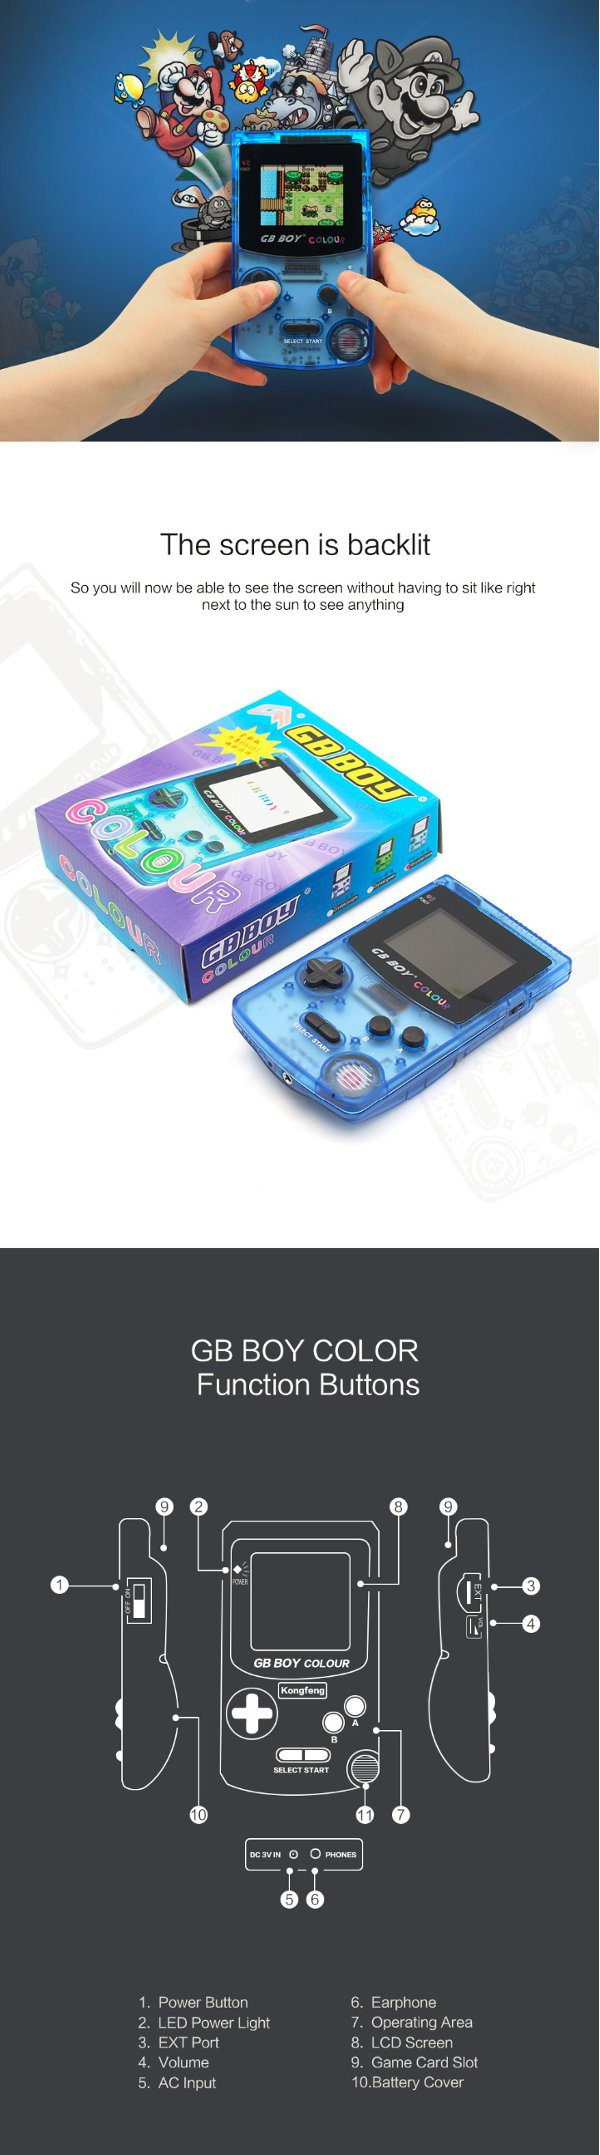 Game boy color list - While The Box Showing 188 Games There Are Only 66 Out Of 188 Are Different Games Games List Is As Bellow